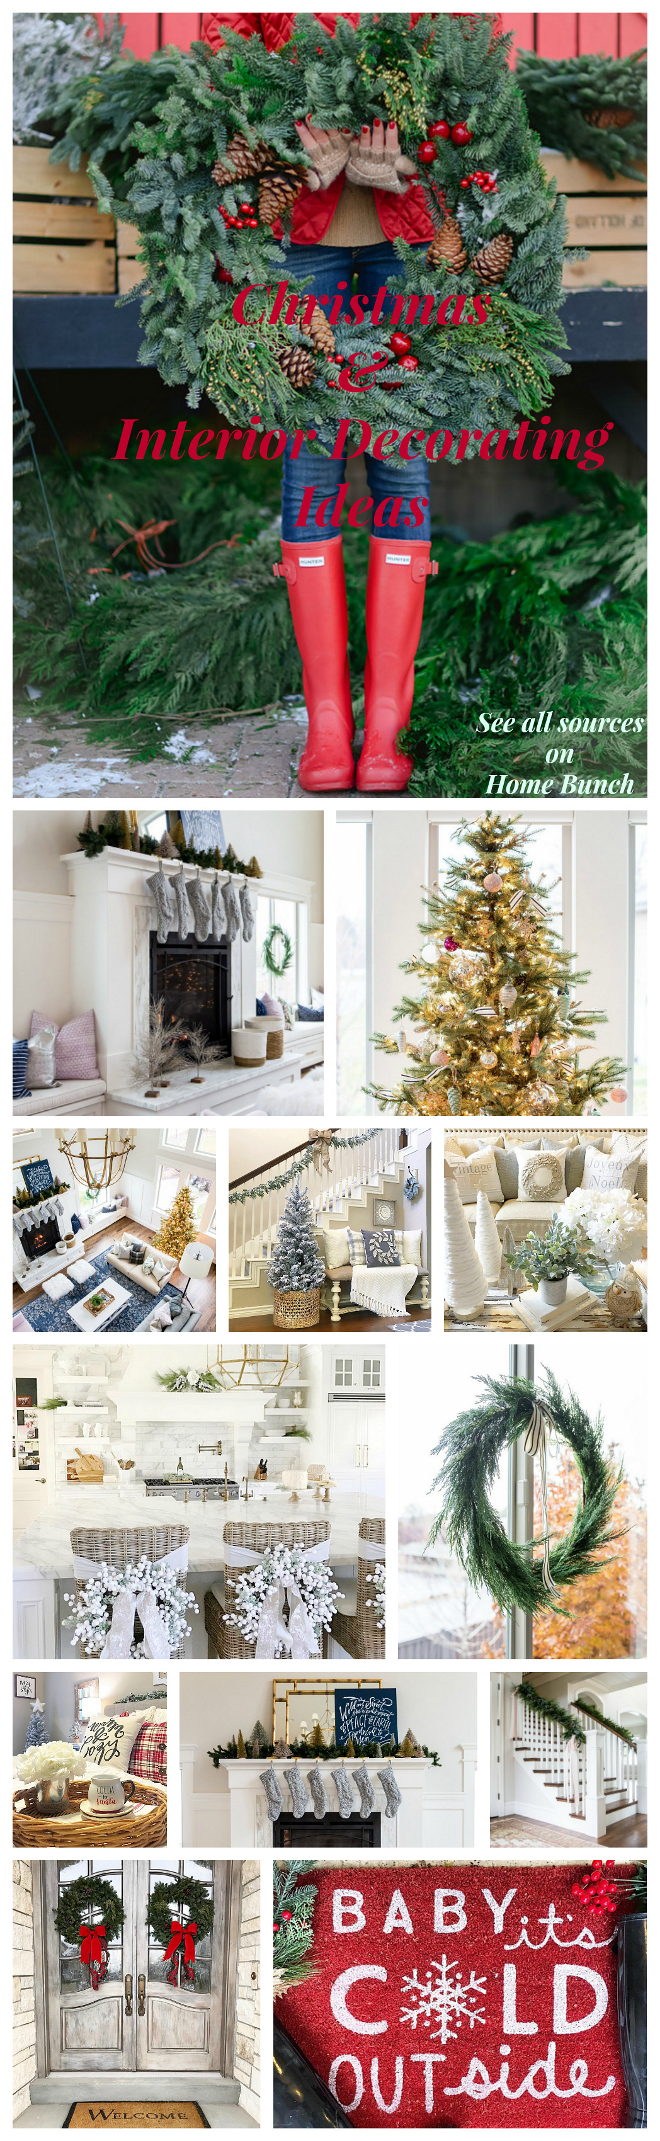 christmas interior decorating ideas christmas interior decorating ideas christmasinteriordecoratingideas - Nordstrom Christmas Decorations